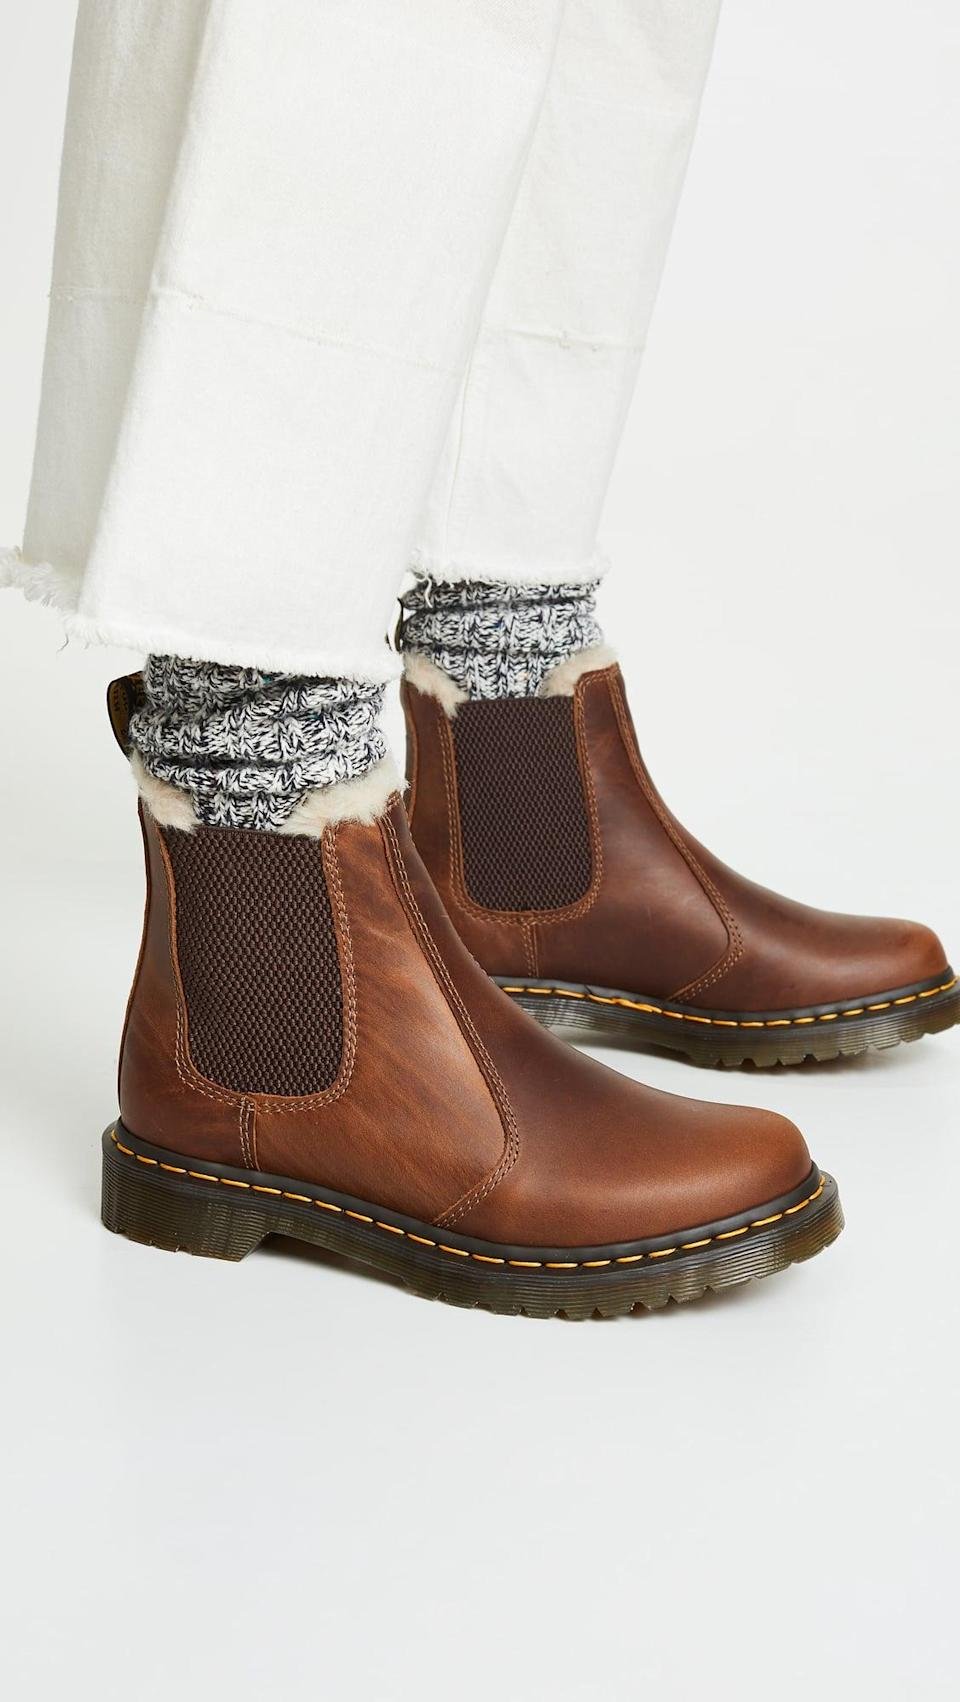 <p>You can't go wrong with the customer favorite <span>Dr. Martens Leonore Sherpa Chelsea Boots</span> ($160). Plus, we adore the fuzzy inside for all-day warmth and comfort.</p>